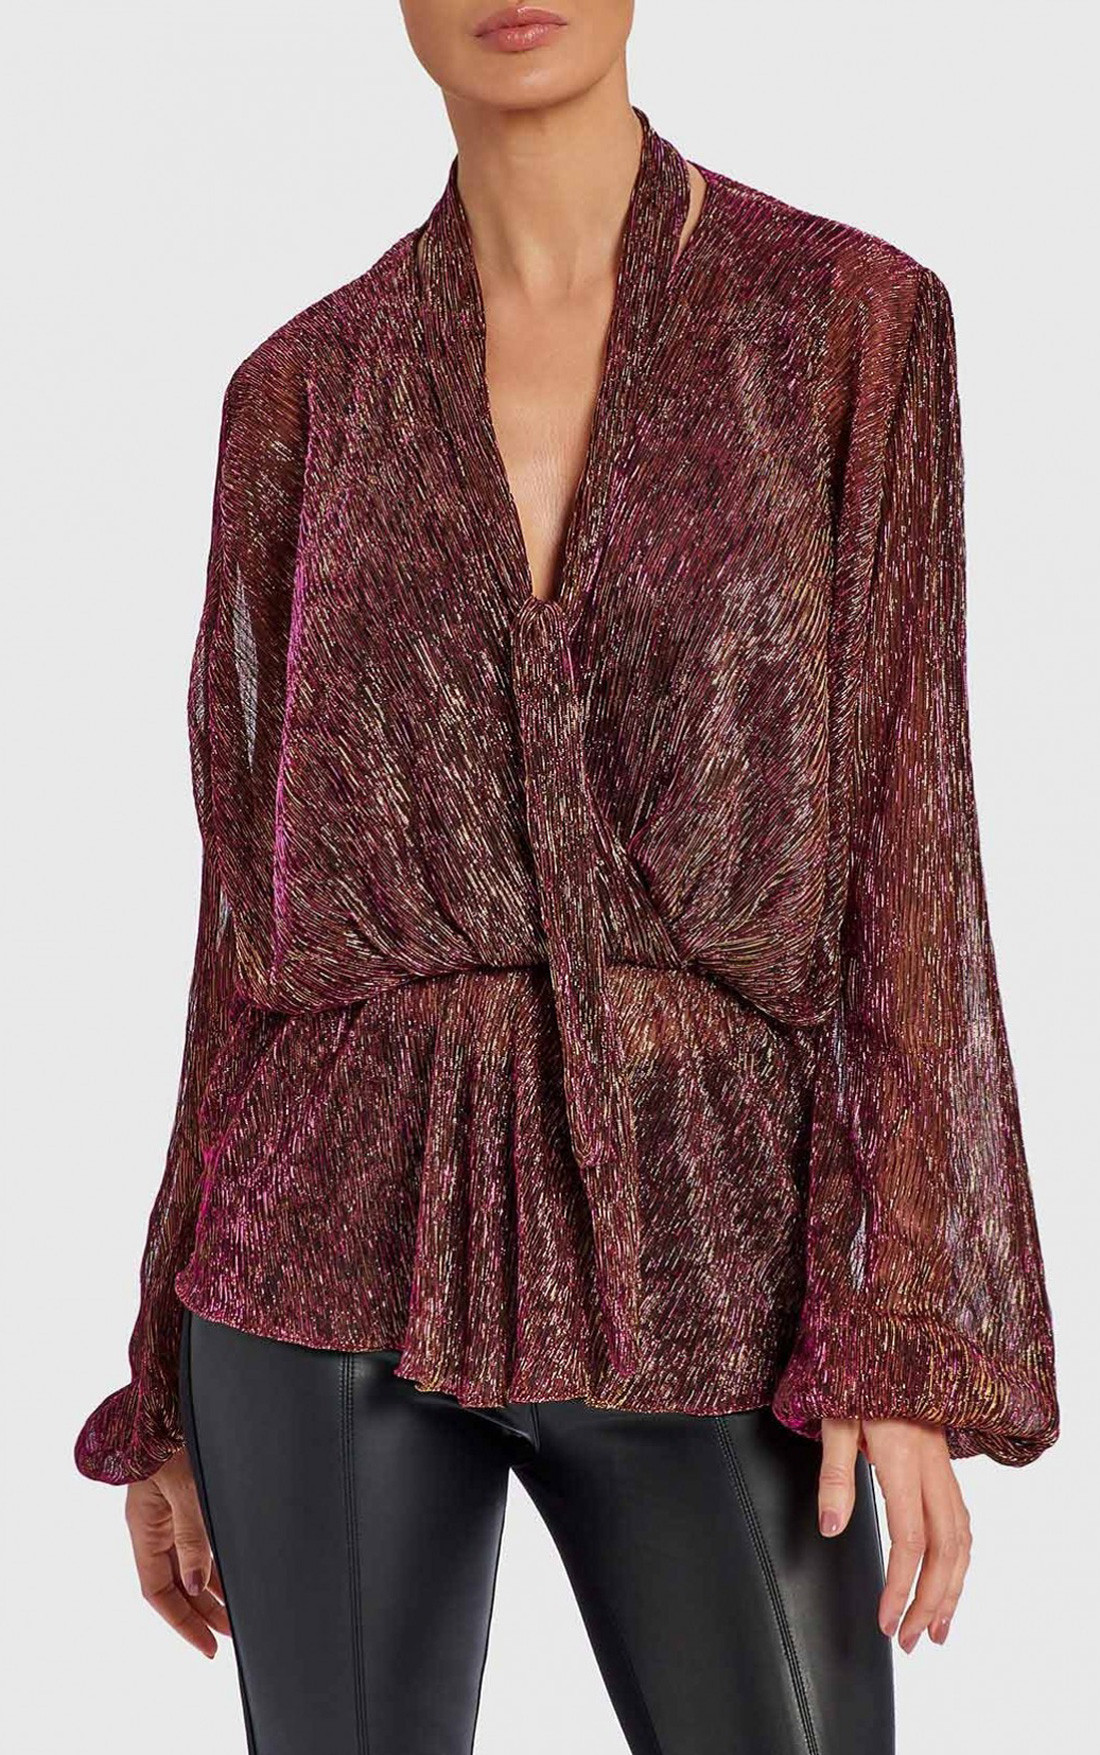 Forever Unique - Thelma Magenta Blouse with Slender Neck Ties and Balloon Sleeves (WF5001)